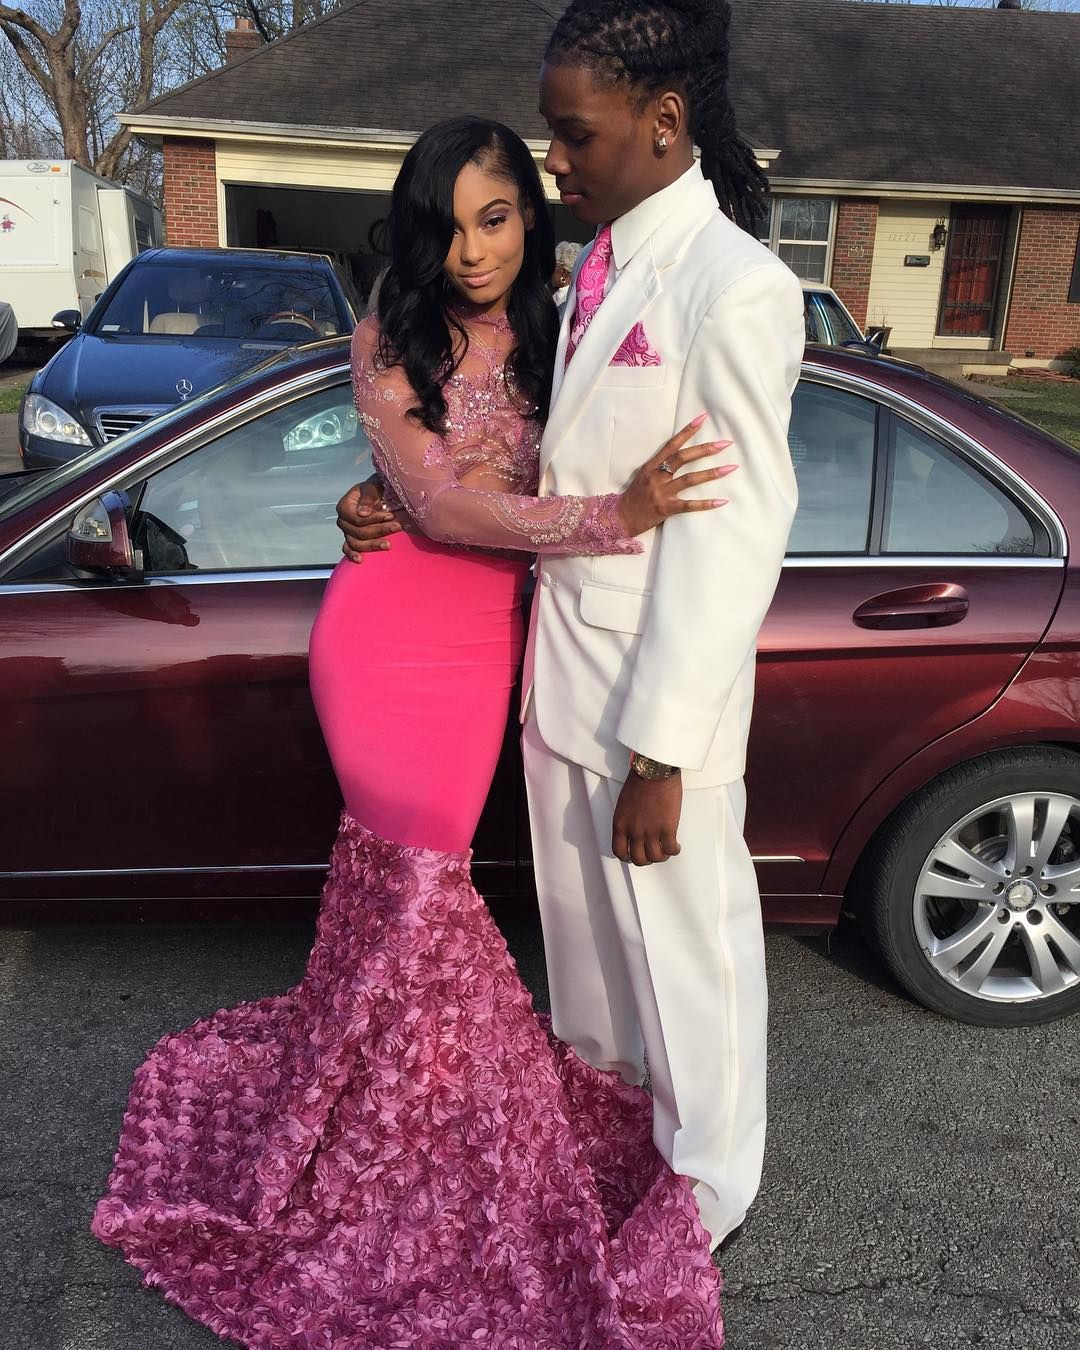 Pin By Ed Drionna On Prom Goals In 2019 Prom Outfits